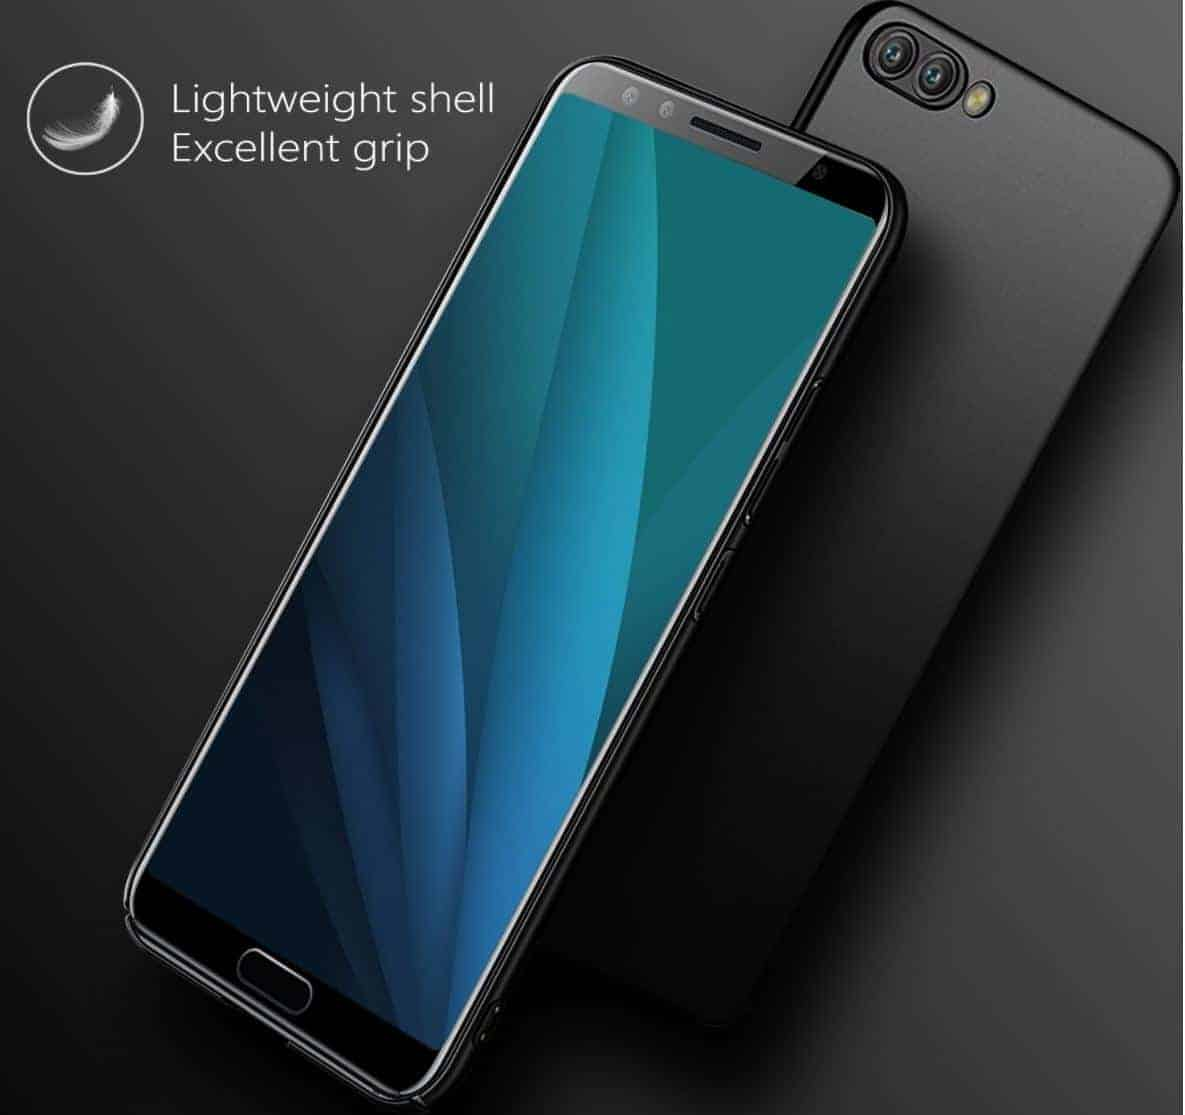 Alleged HTC U12 Leaks With Four Cameras, Extremely Thin ...